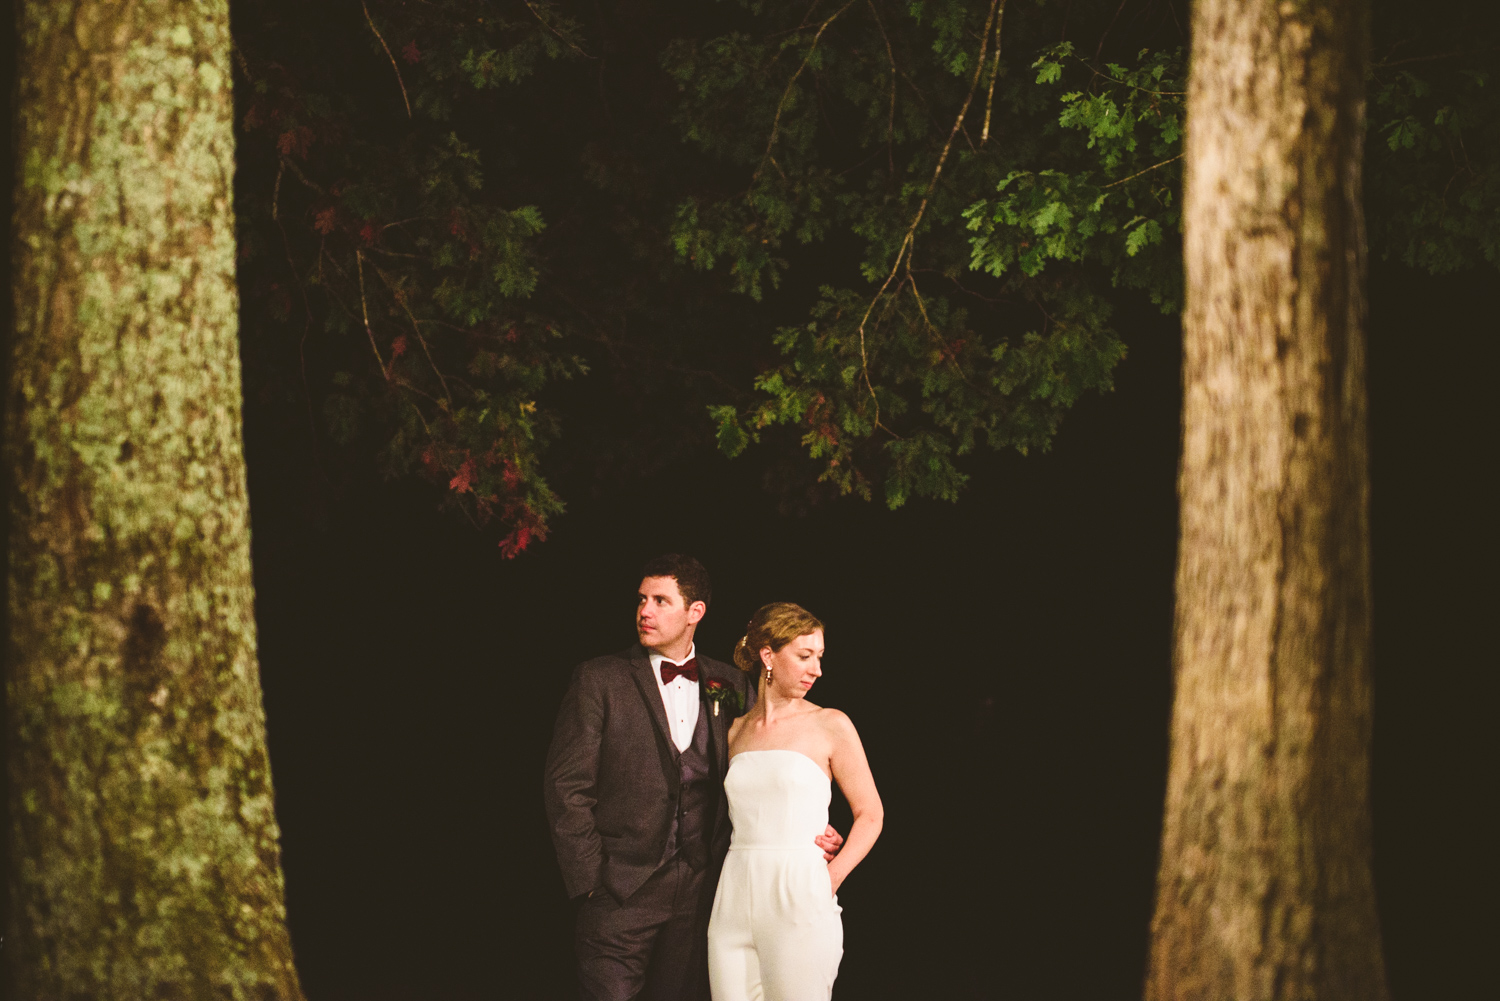 016 - bride in wedding jumpsuit poses for a night portrait in virginia forest.jpg